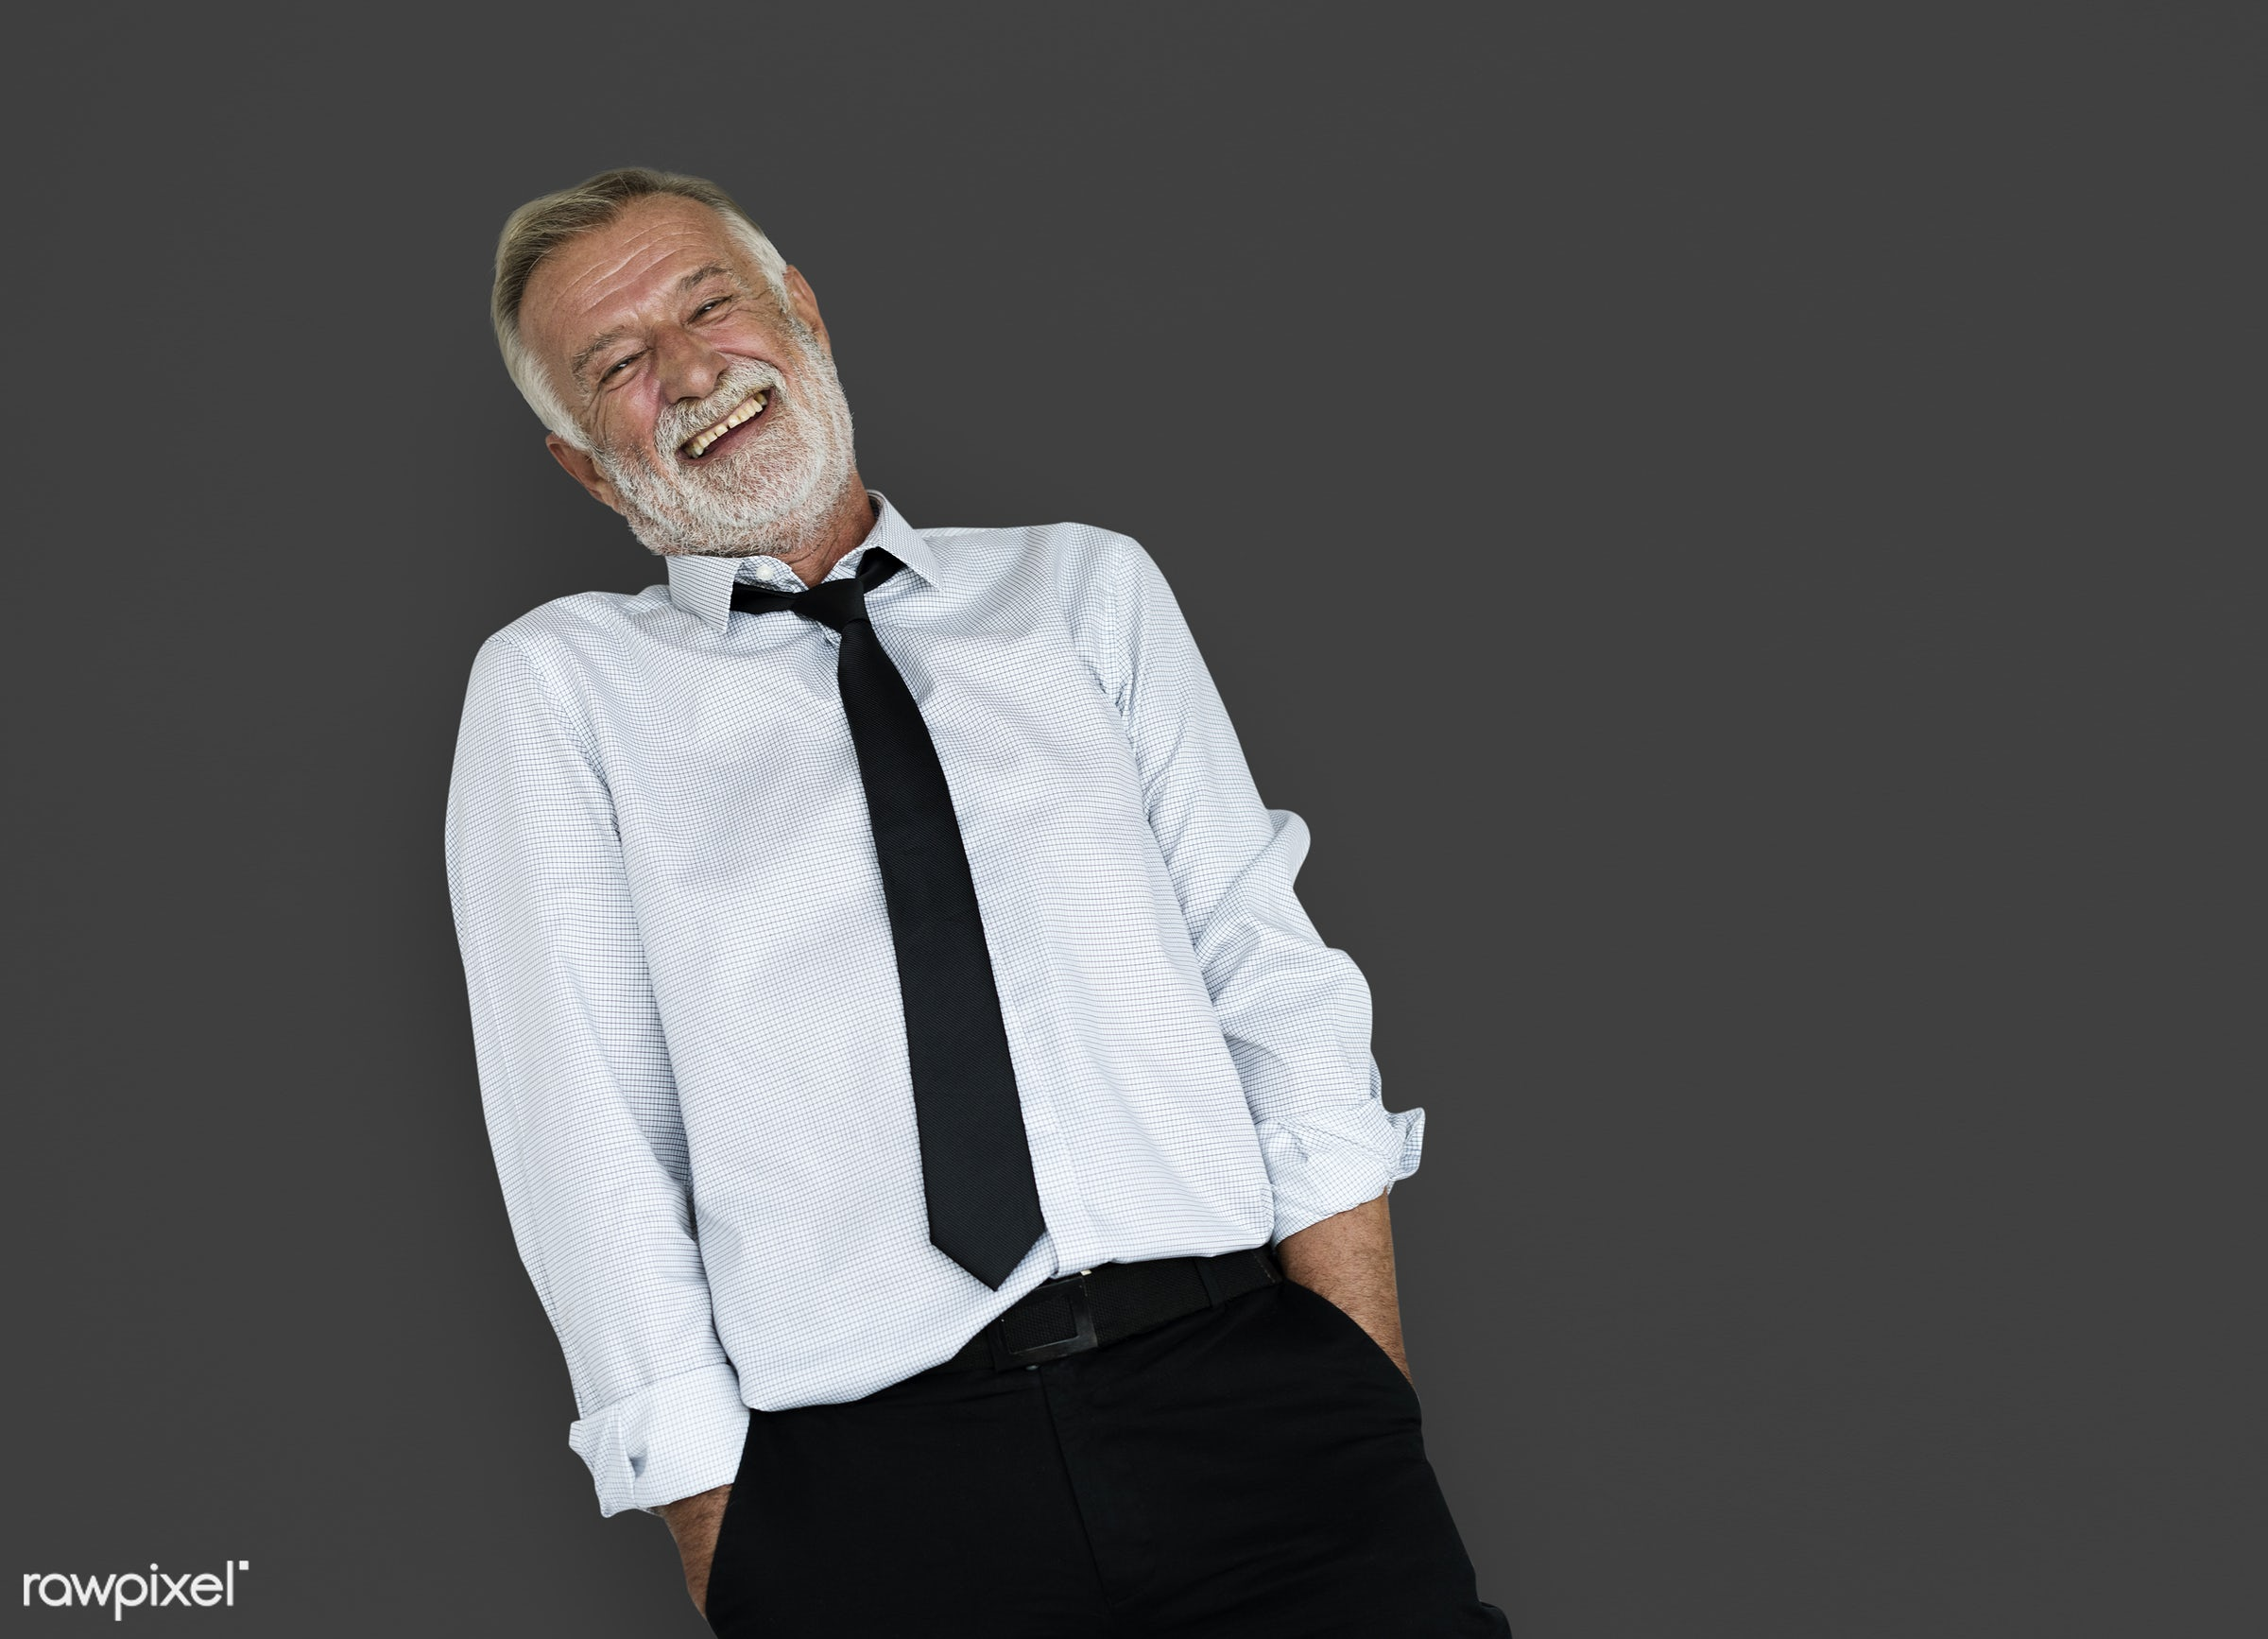 expression, studio, old, person, business wear, people, business, caucasian, happy, brainstorm, smile, cheerful, smiling,...